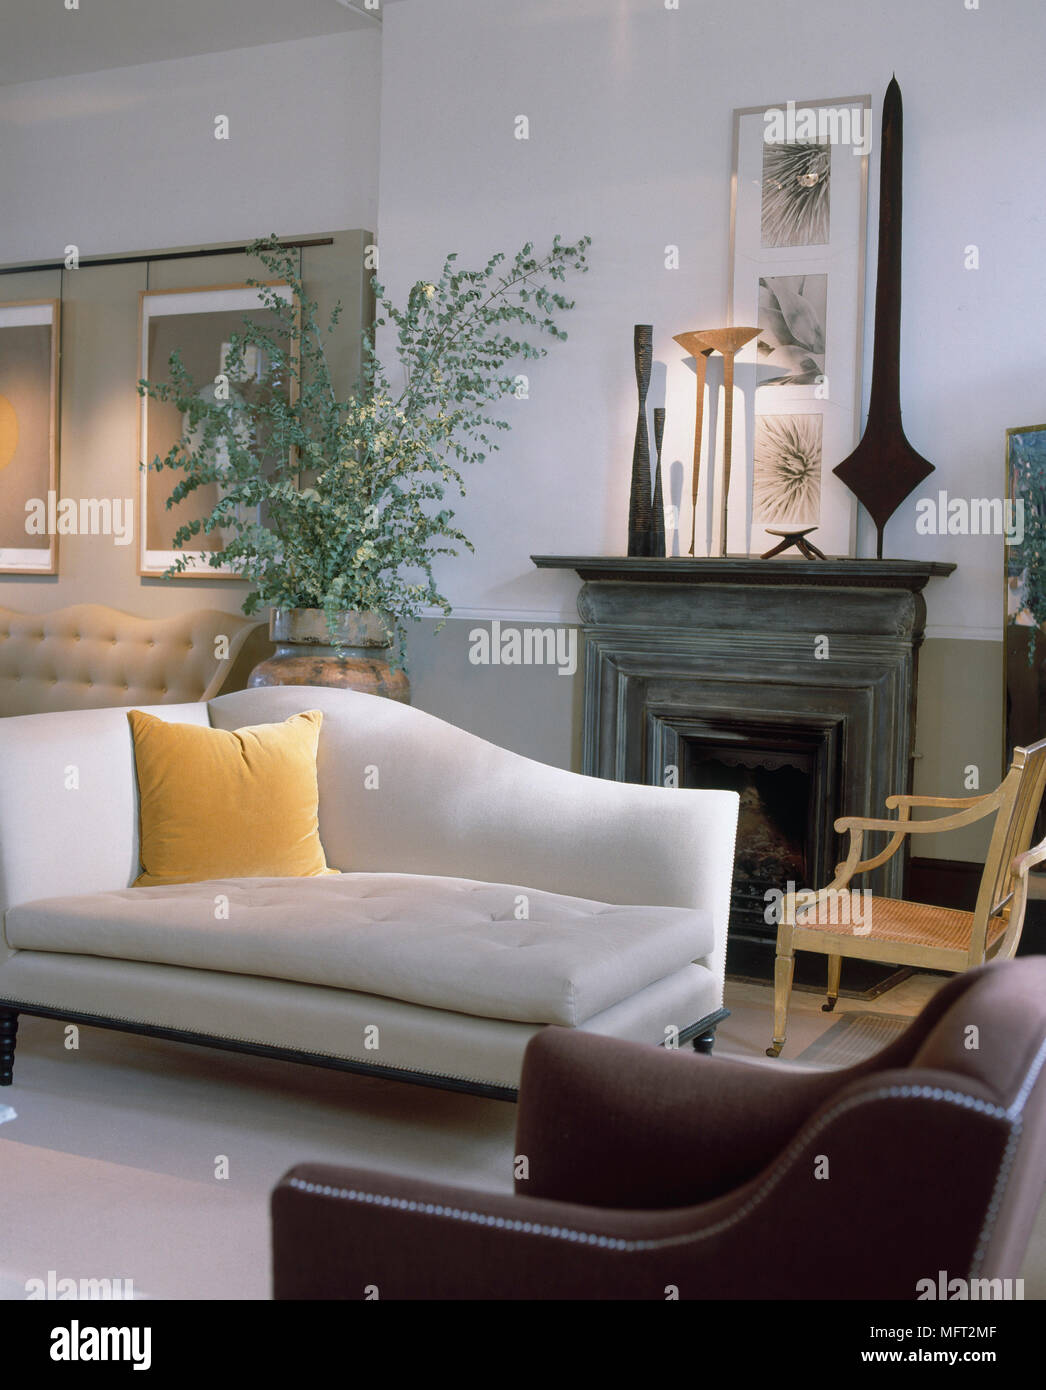 chaise lounges for living room tiles design in nigeria contemporary lounge wall stock photos sitting with white and green walls framed artwork fireplace sculpture cream